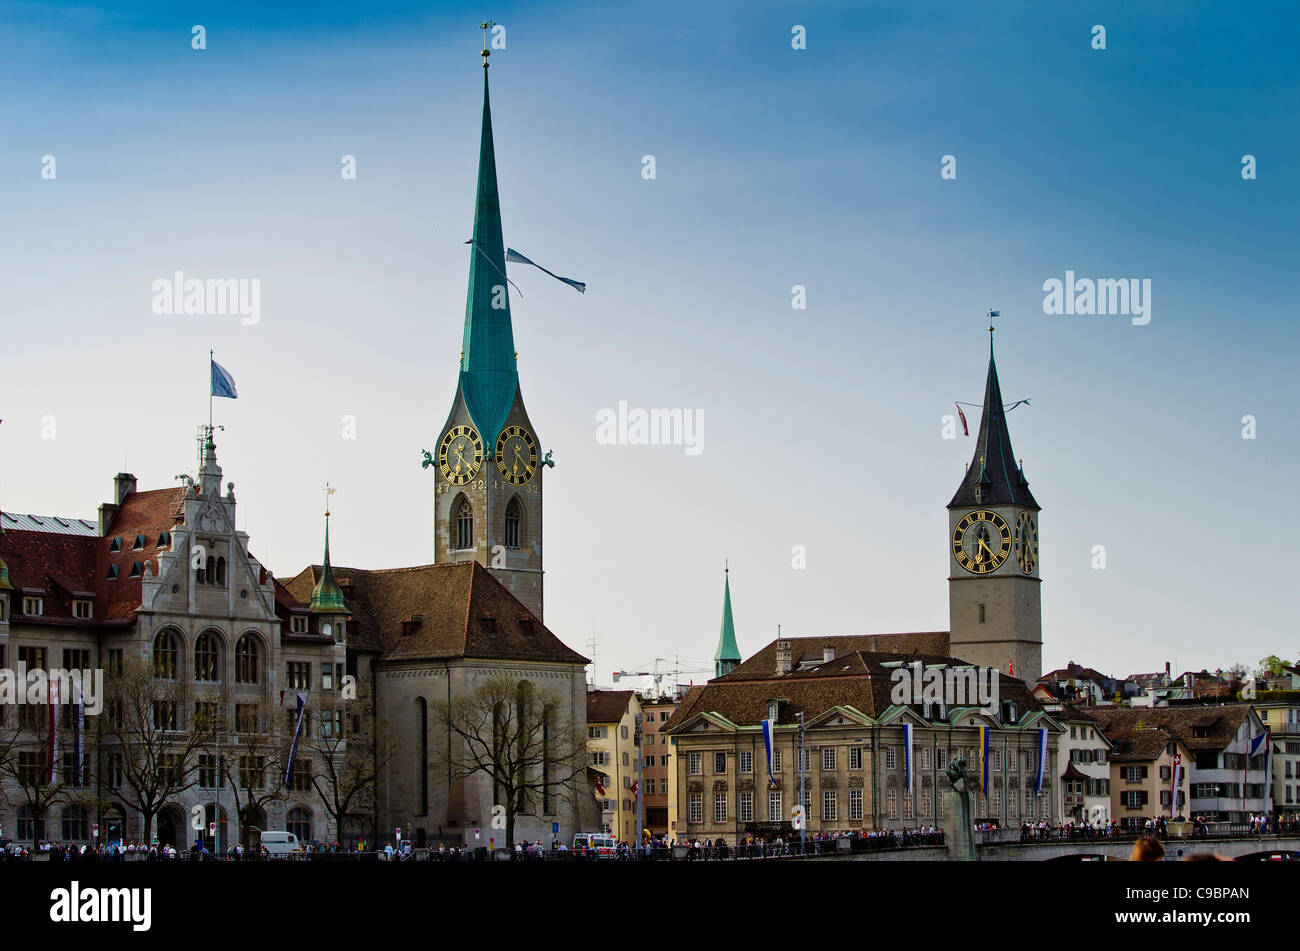 Fraumunster and St. peter Churches on the river Limmat, Zurich, Switzerland - Stock Image